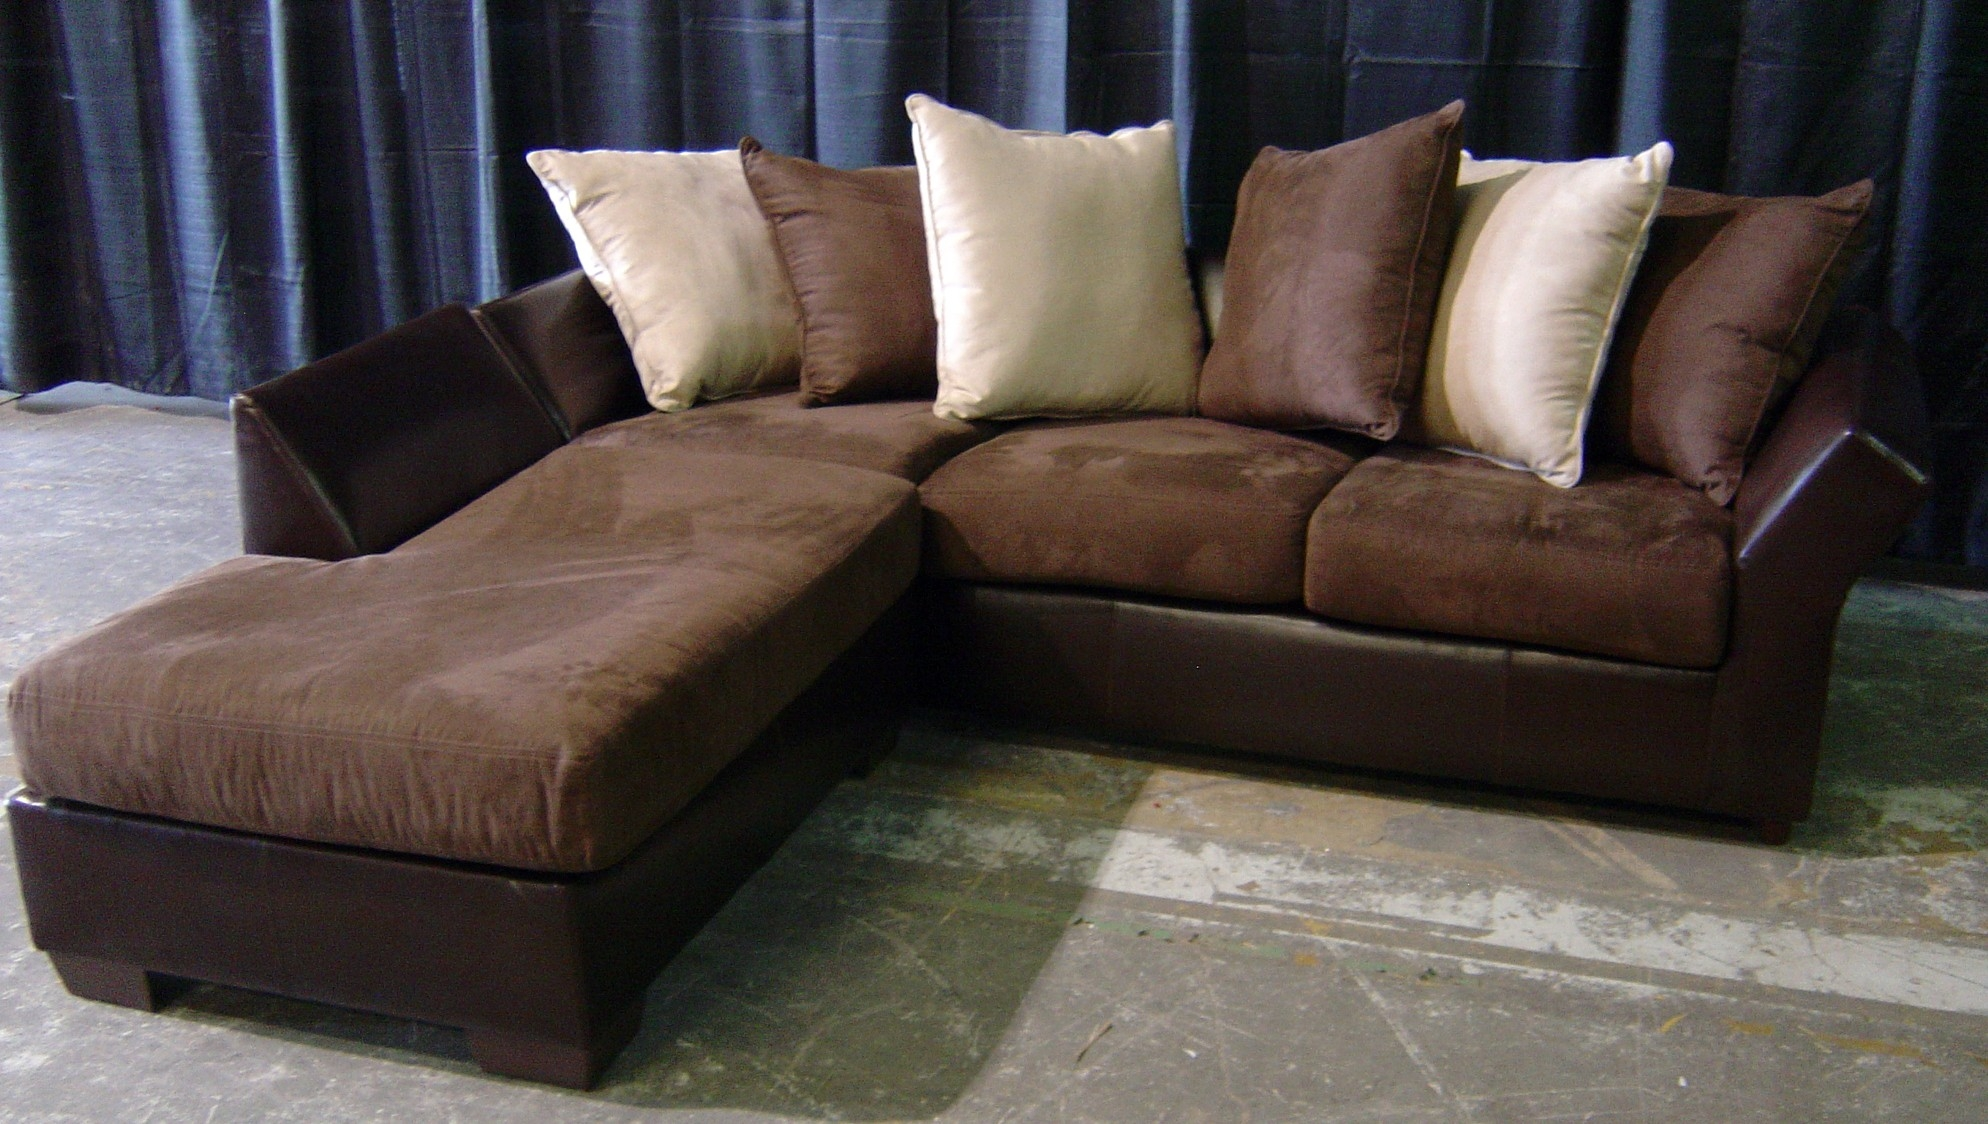 10 Piece Sectional Sofa Hotelsbacau Regarding 10 Piece Sectional Sofa (Image 2 of 15)